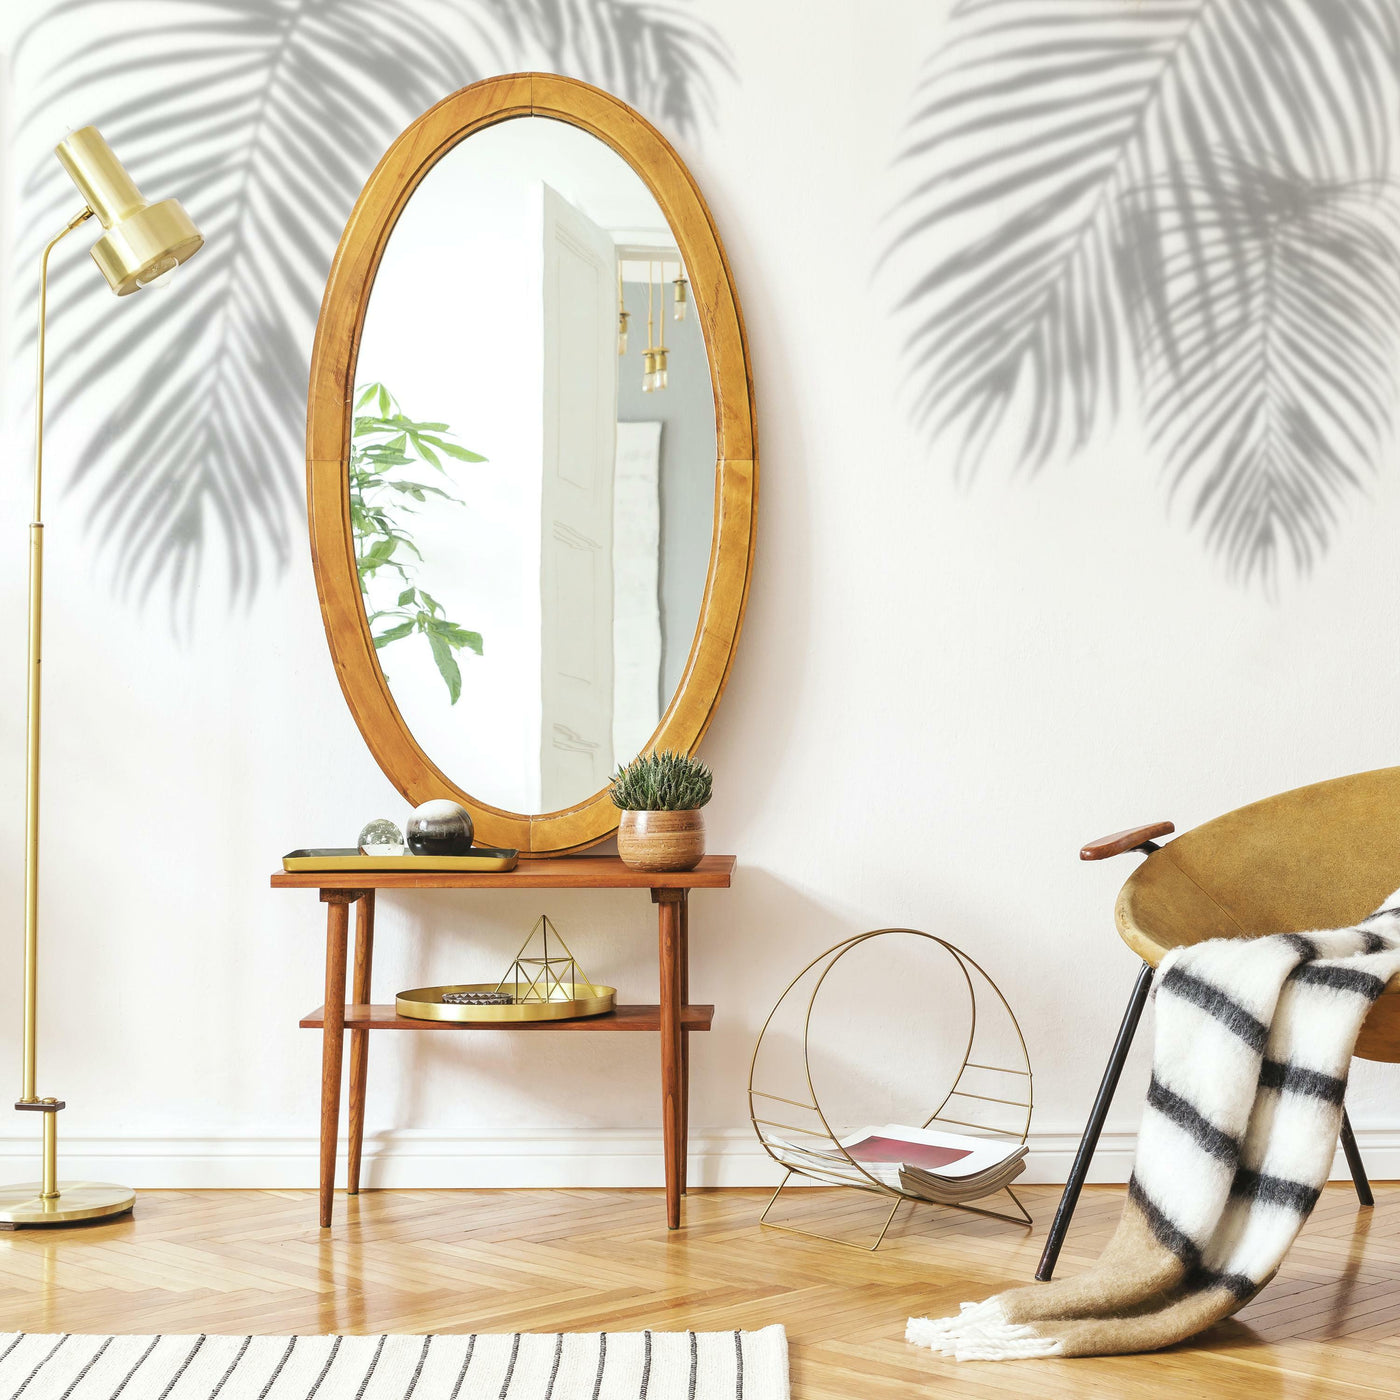 3 Benefits of Giant Wall Decals